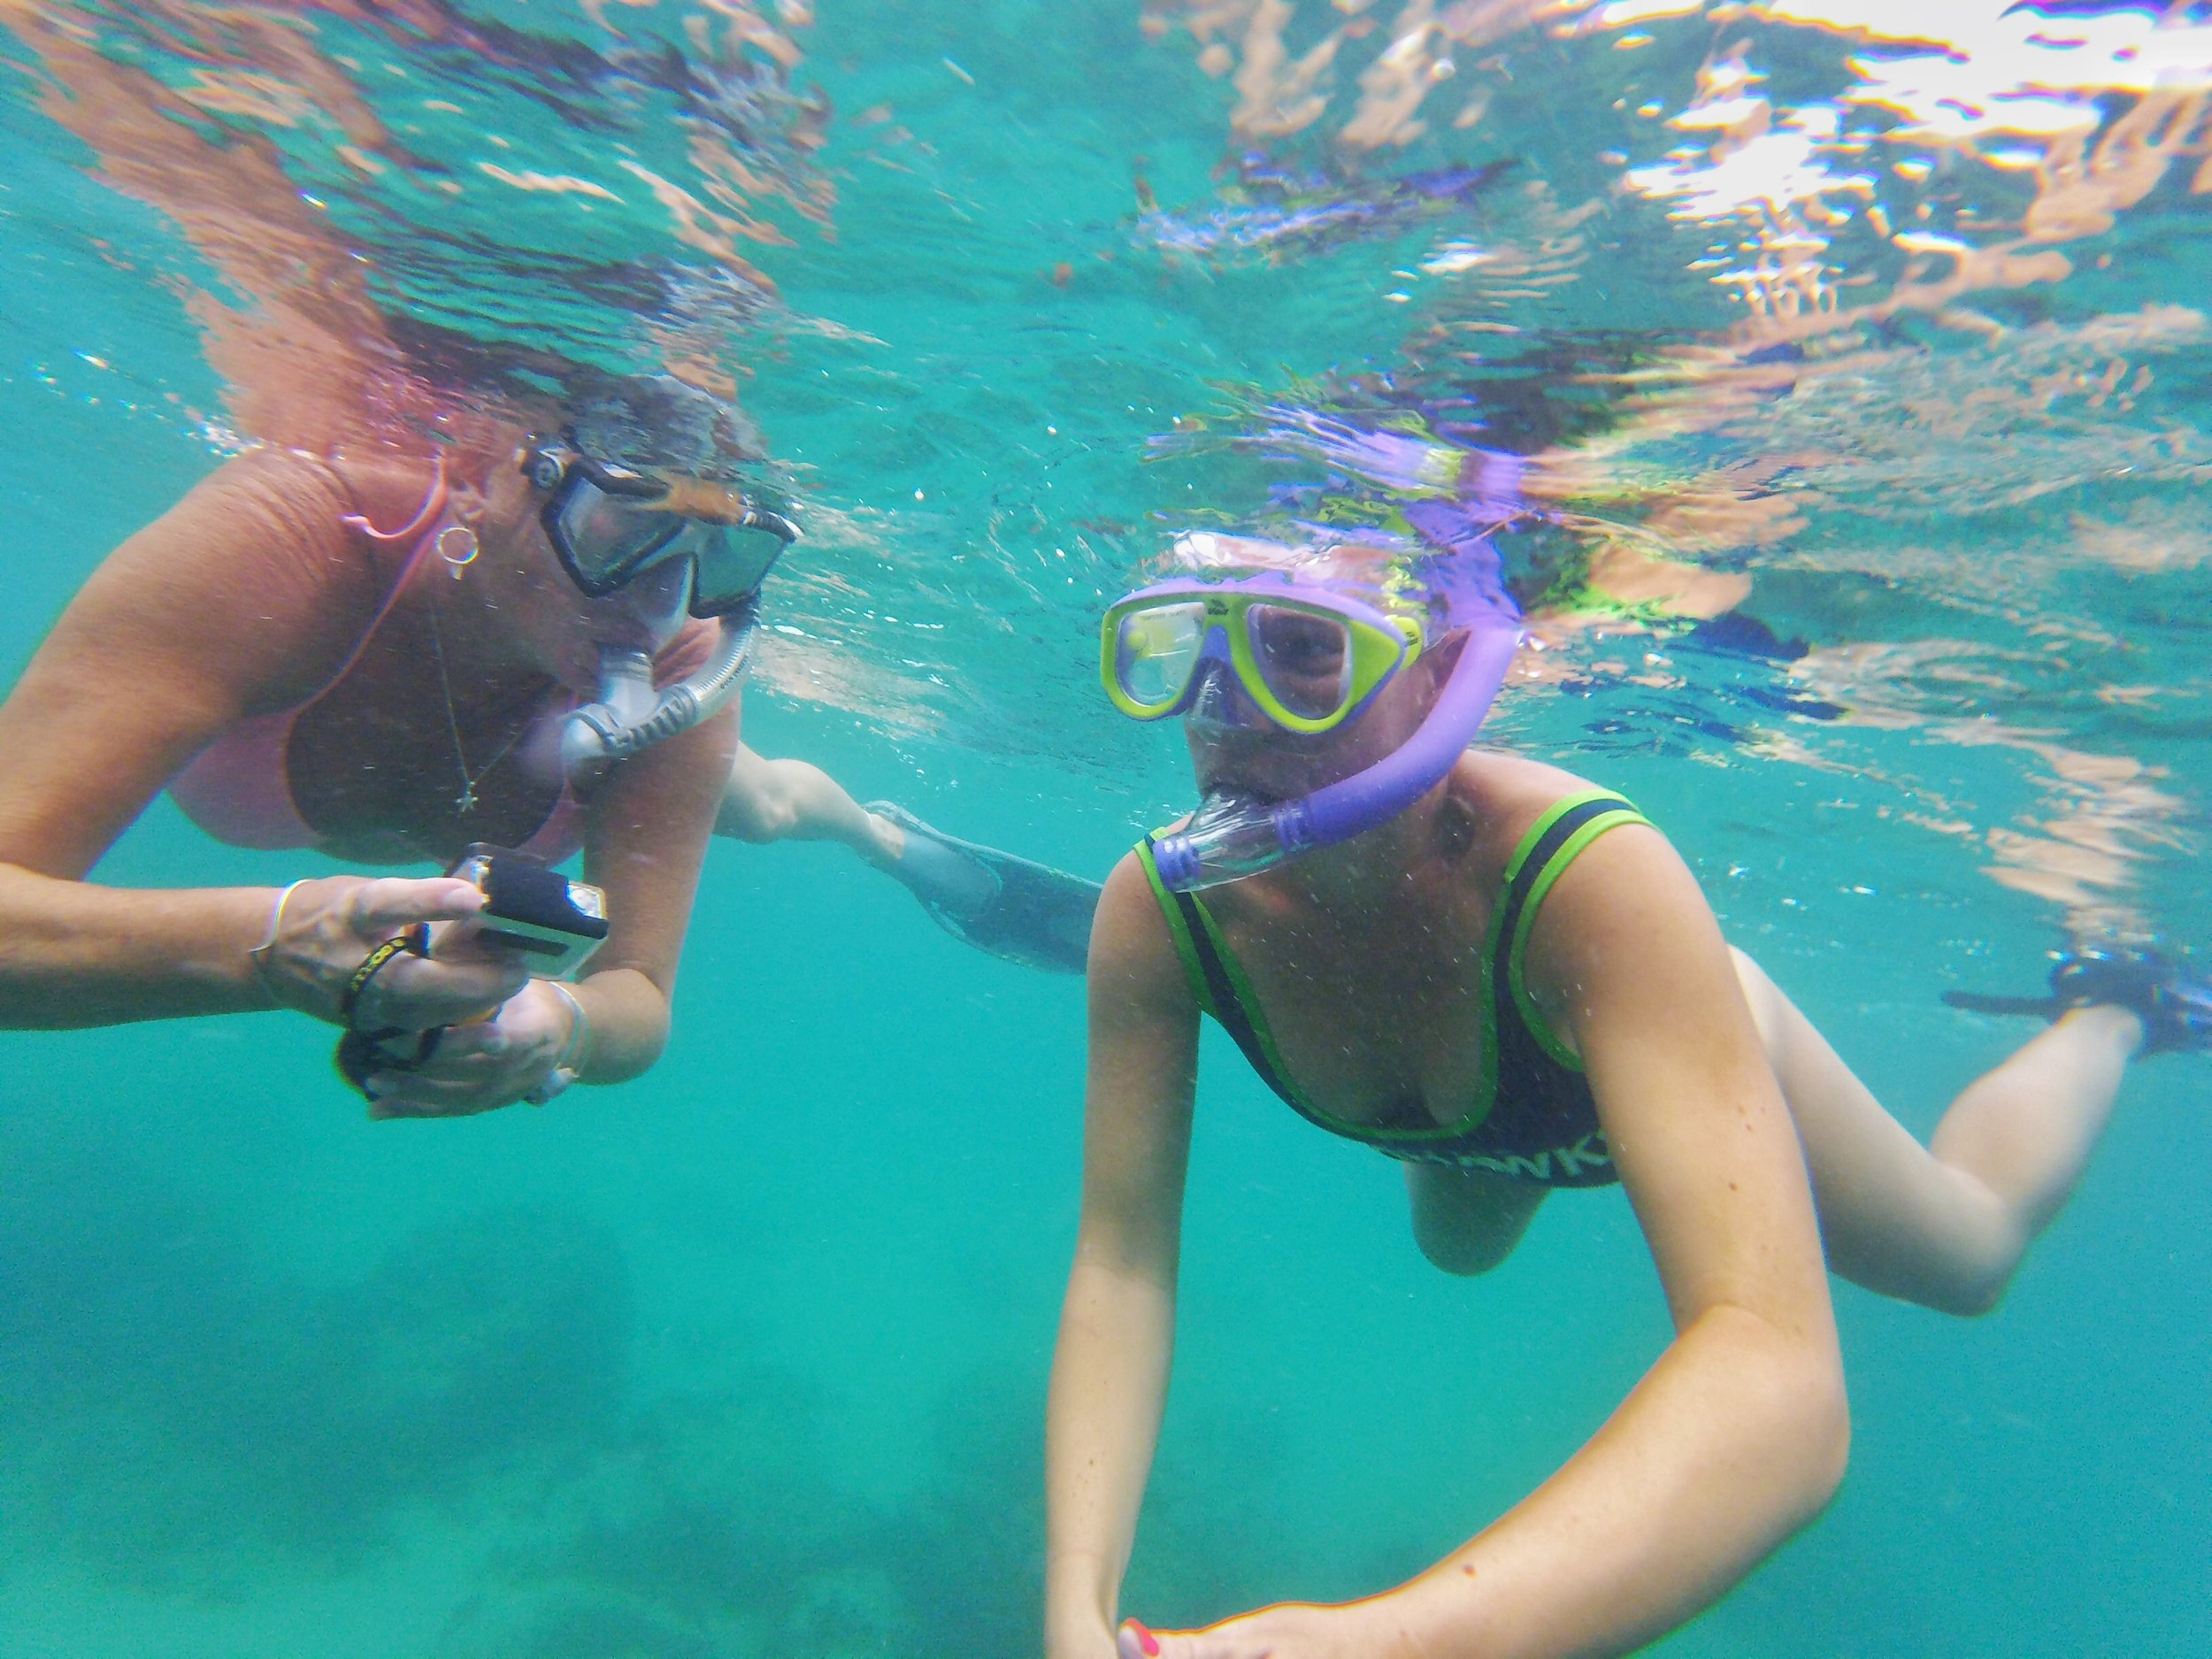 Snorkel tip: Always use the buddy system when snorkeling!